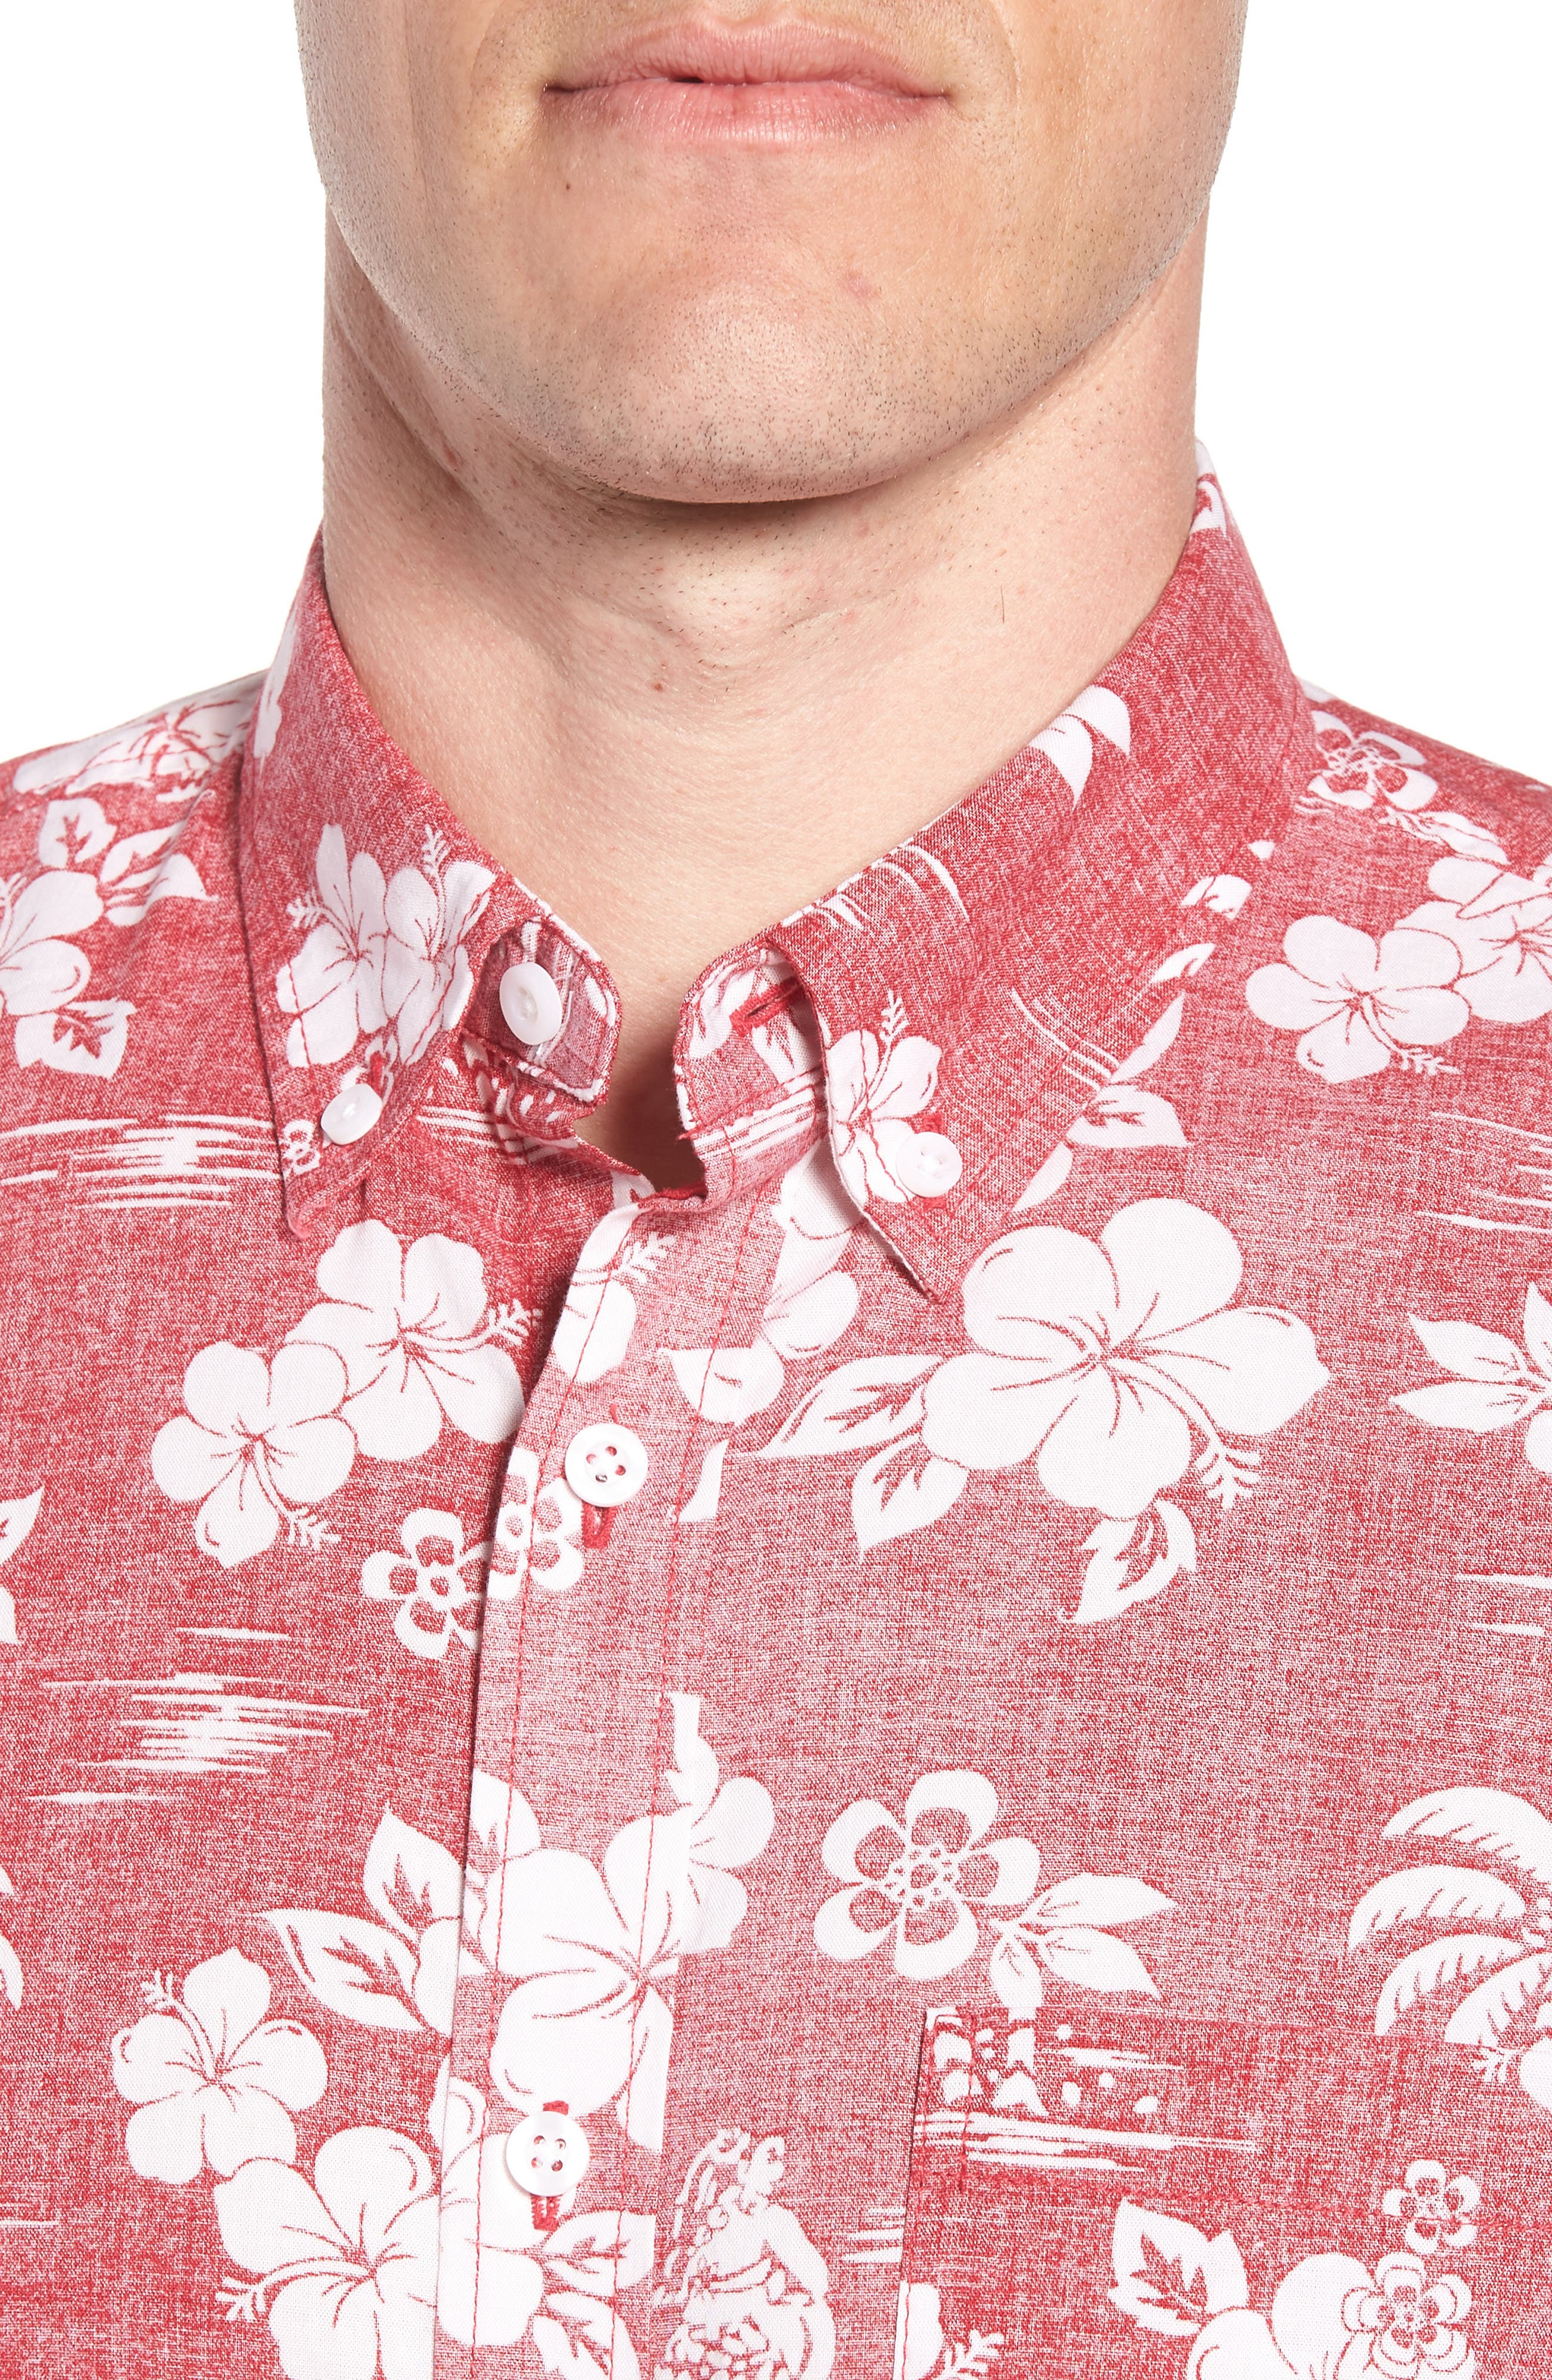 Trim Fit Island Print Sport Shirt,                             Alternate thumbnail 2, color,                             Red Pompeii Hula Girls